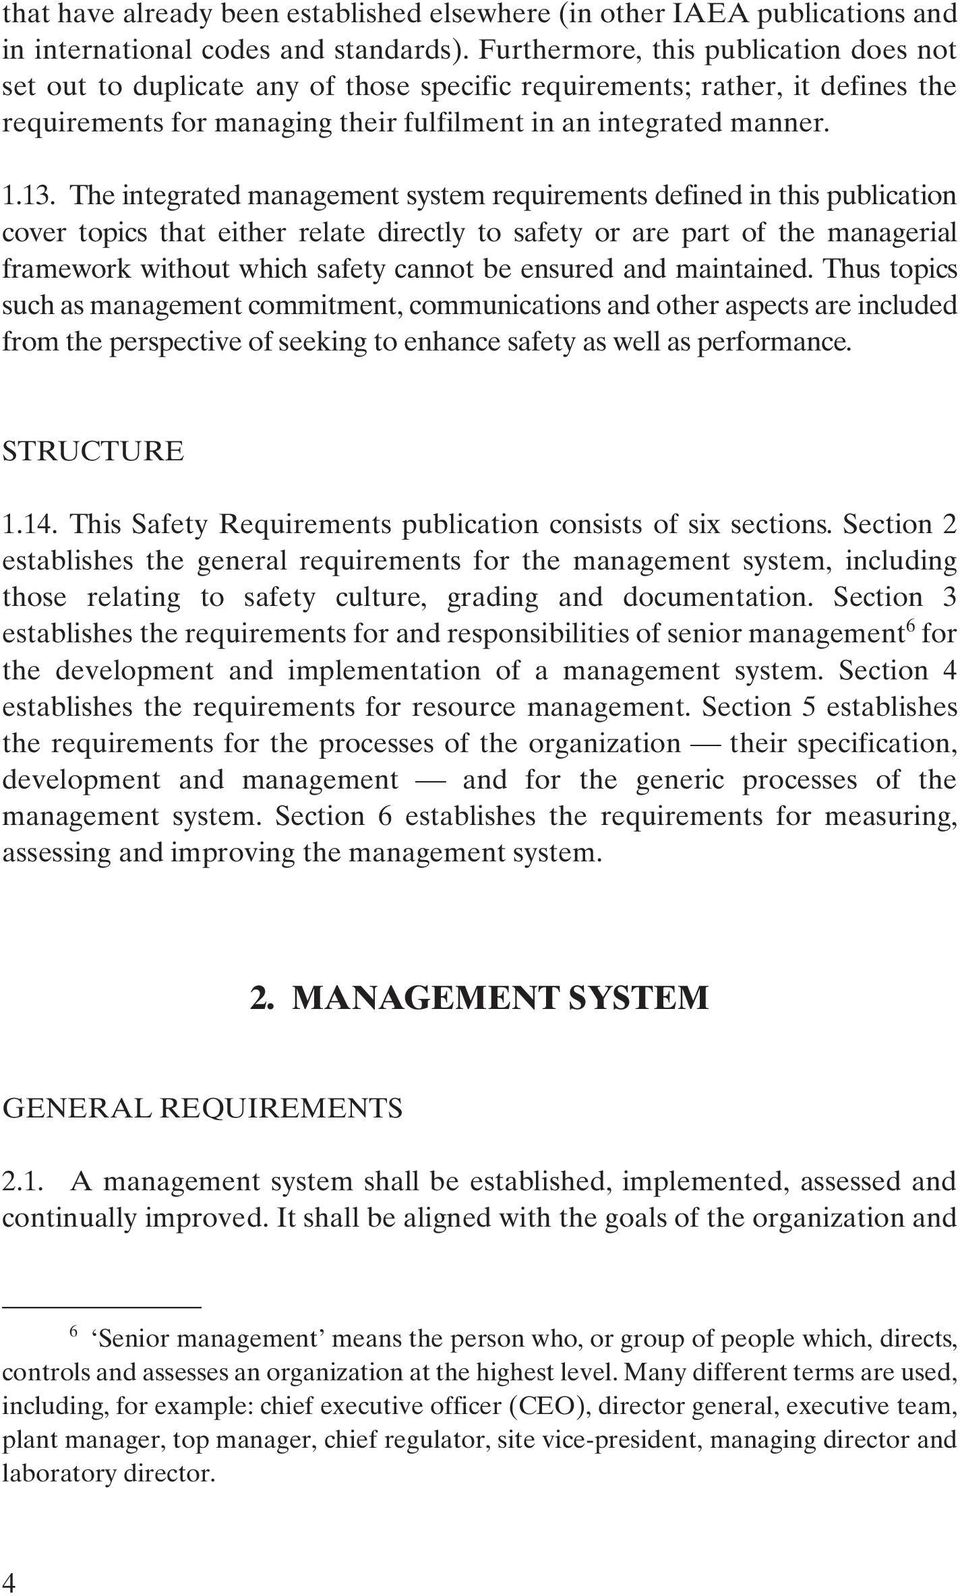 The integrated management system requirements defined in this publication cover topics that either relate directly to safety or are part of the managerial framework without which safety cannot be